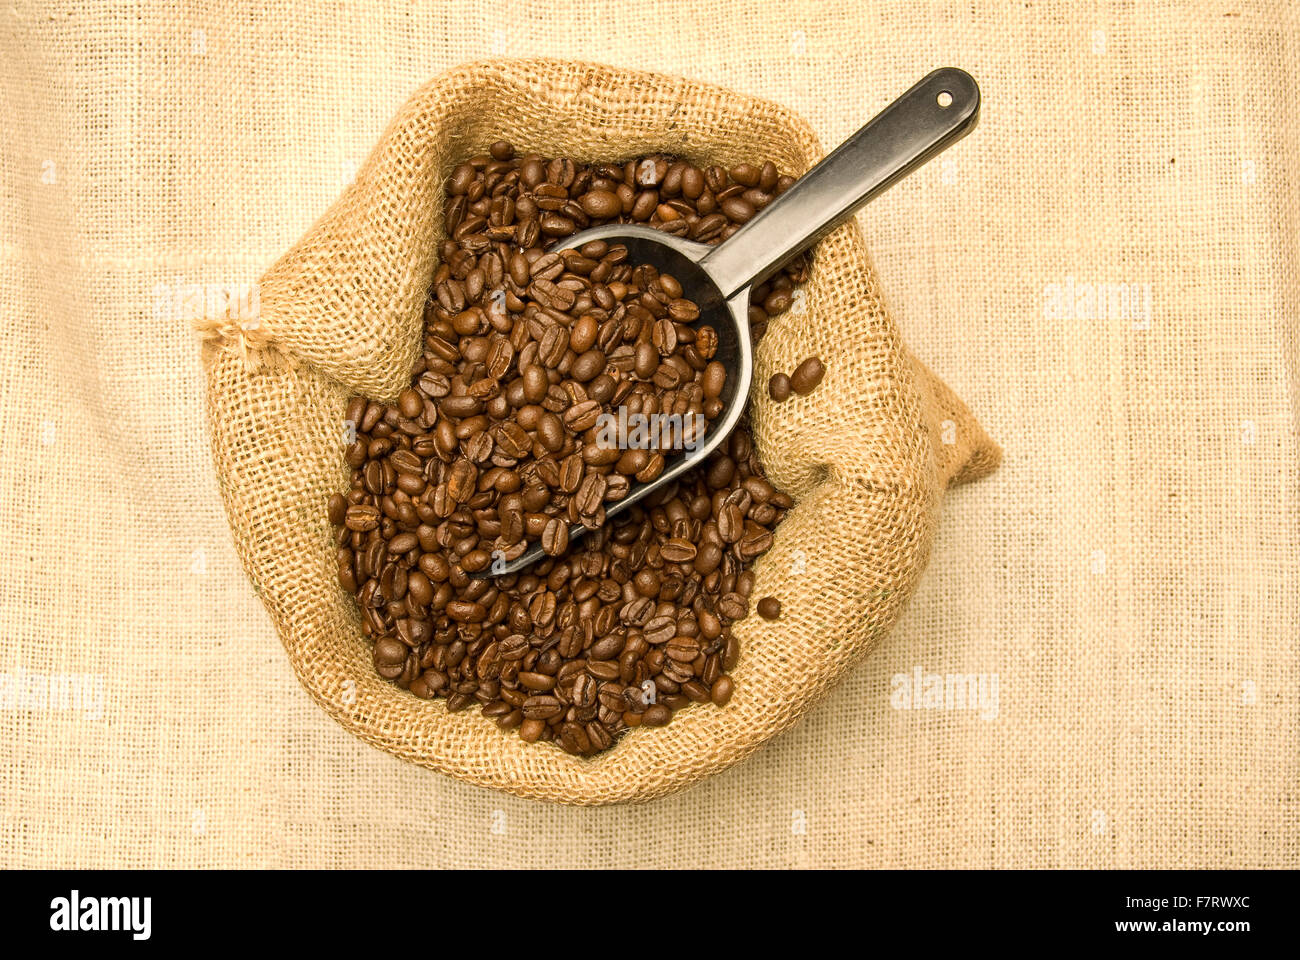 Coffee Beans With Scoop - Stock Image